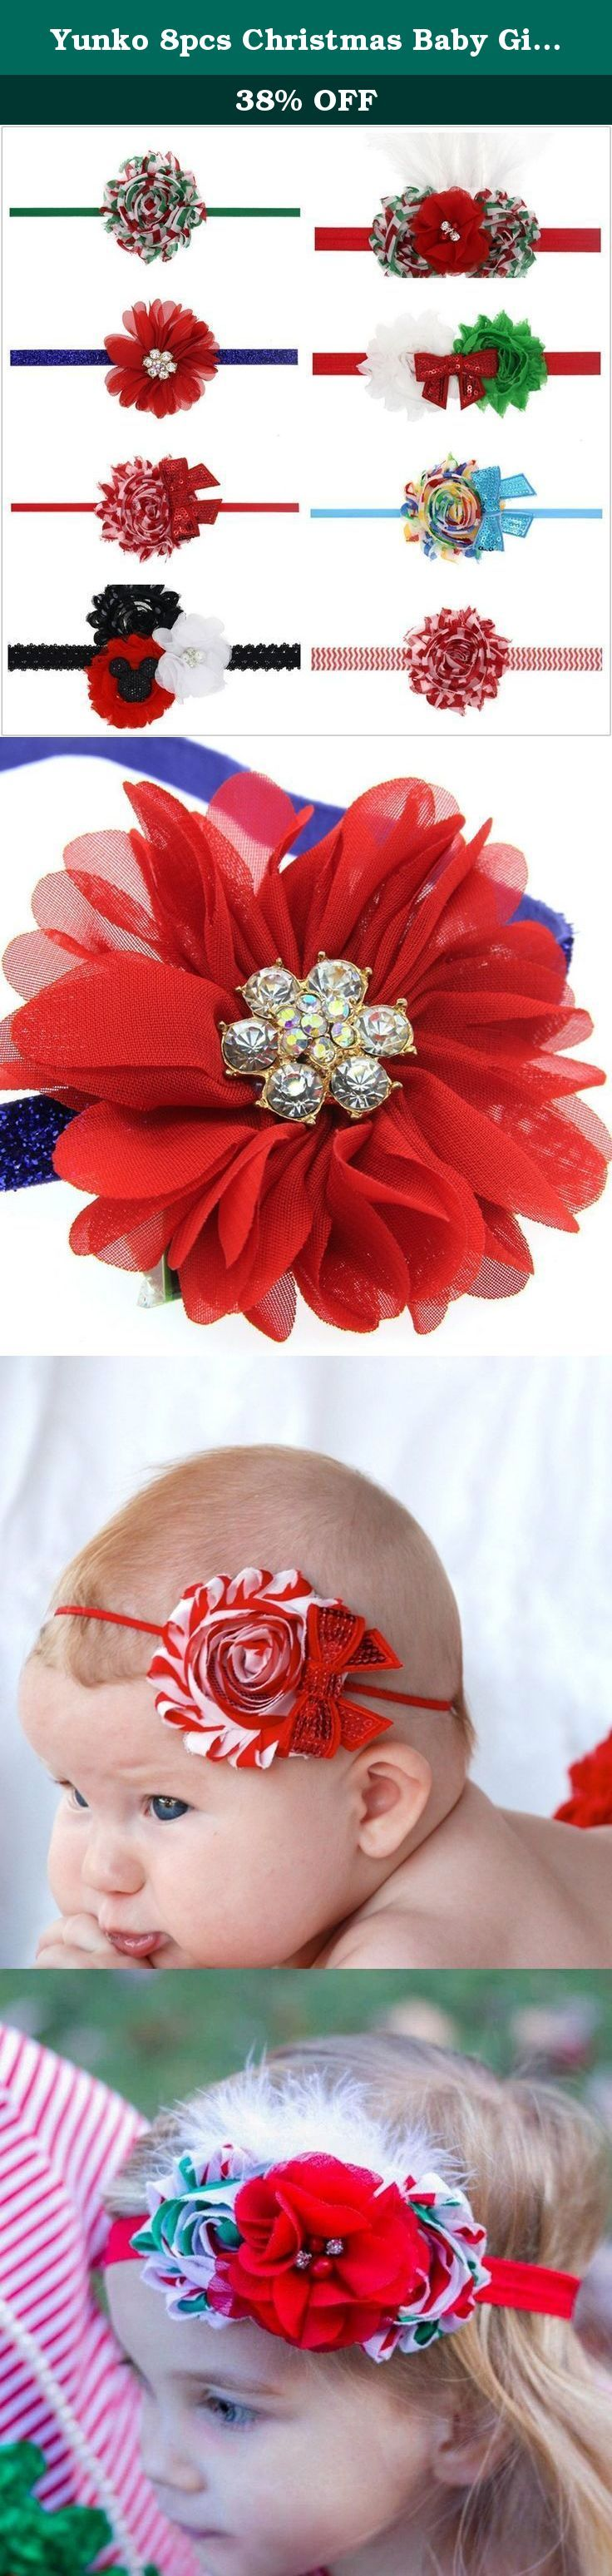 """Yunko 8pcs Christmas Baby Girl's Elastic Headbands Bow Princess Hairband, Green Red and White. Best Gift Choice for any newborn infants toddlers boy and girls These headbands are absolutely beautiful! High quality, elegant, and with so many colors to choose from, they add a touch of class to any outfit! Click """"Add to Cart"""" to buy now! ."""